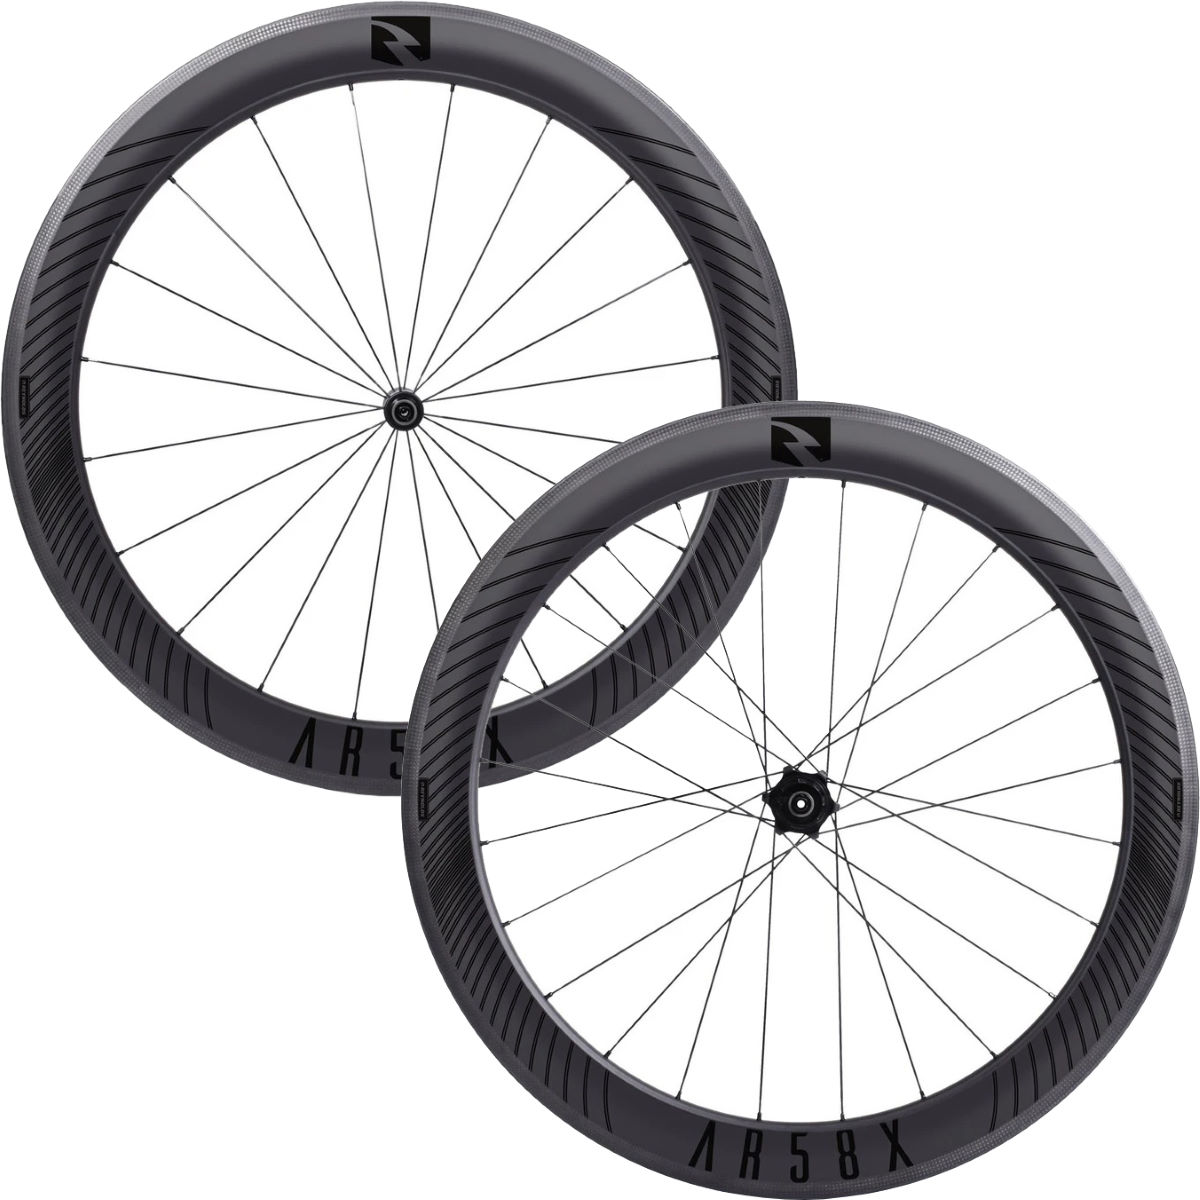 Reynolds Reynolds Arx 58 Carbon Wheelset   Wheel Sets